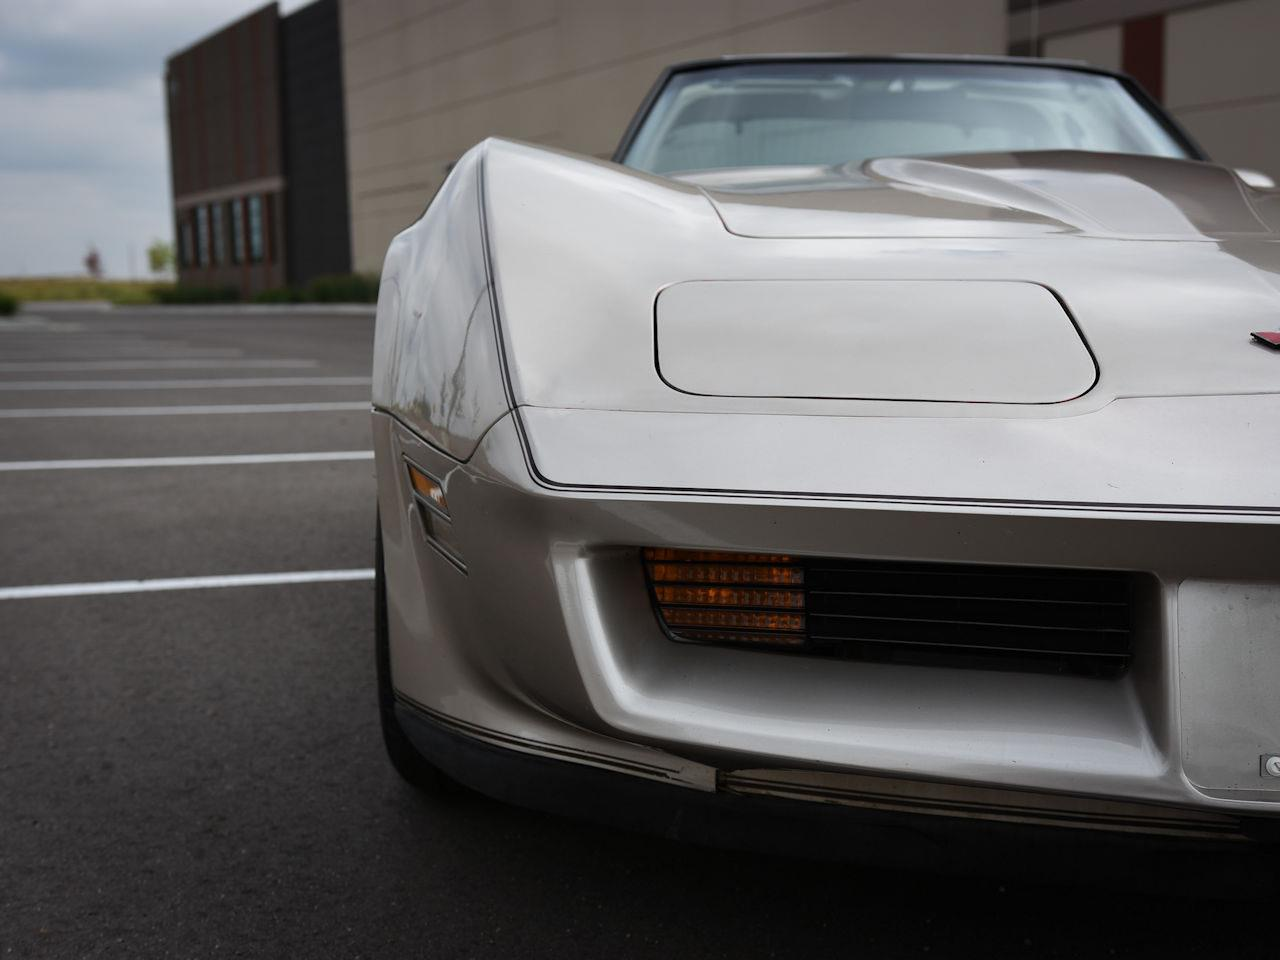 Large Picture of '82 Chevrolet Corvette located in O'Fallon Illinois - $18,995.00 - LNRR